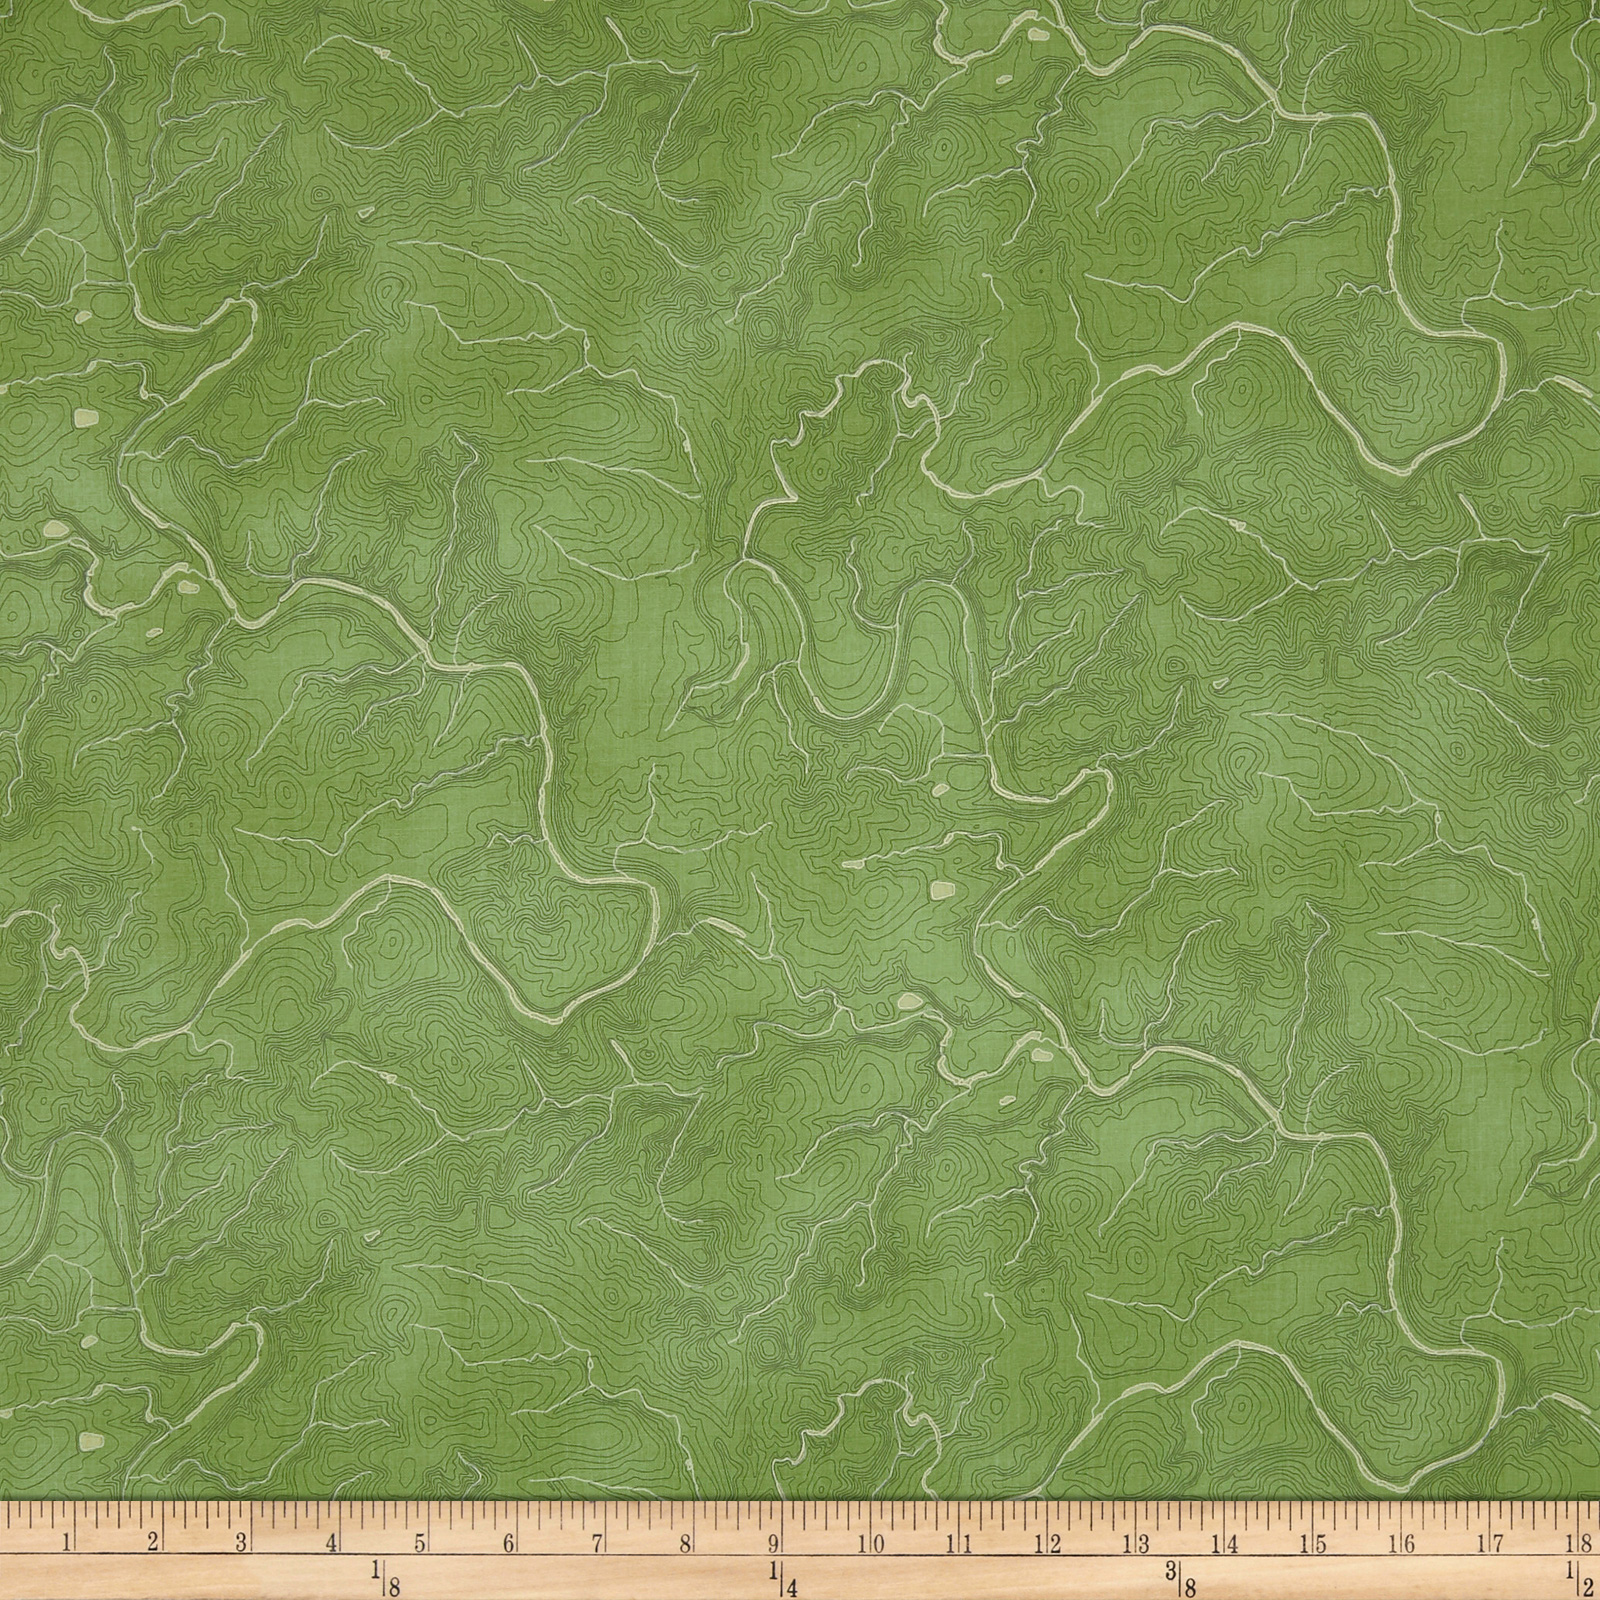 INOpets.com Anything for Pets Parents & Their Pets Meridian Topography Green Fabric